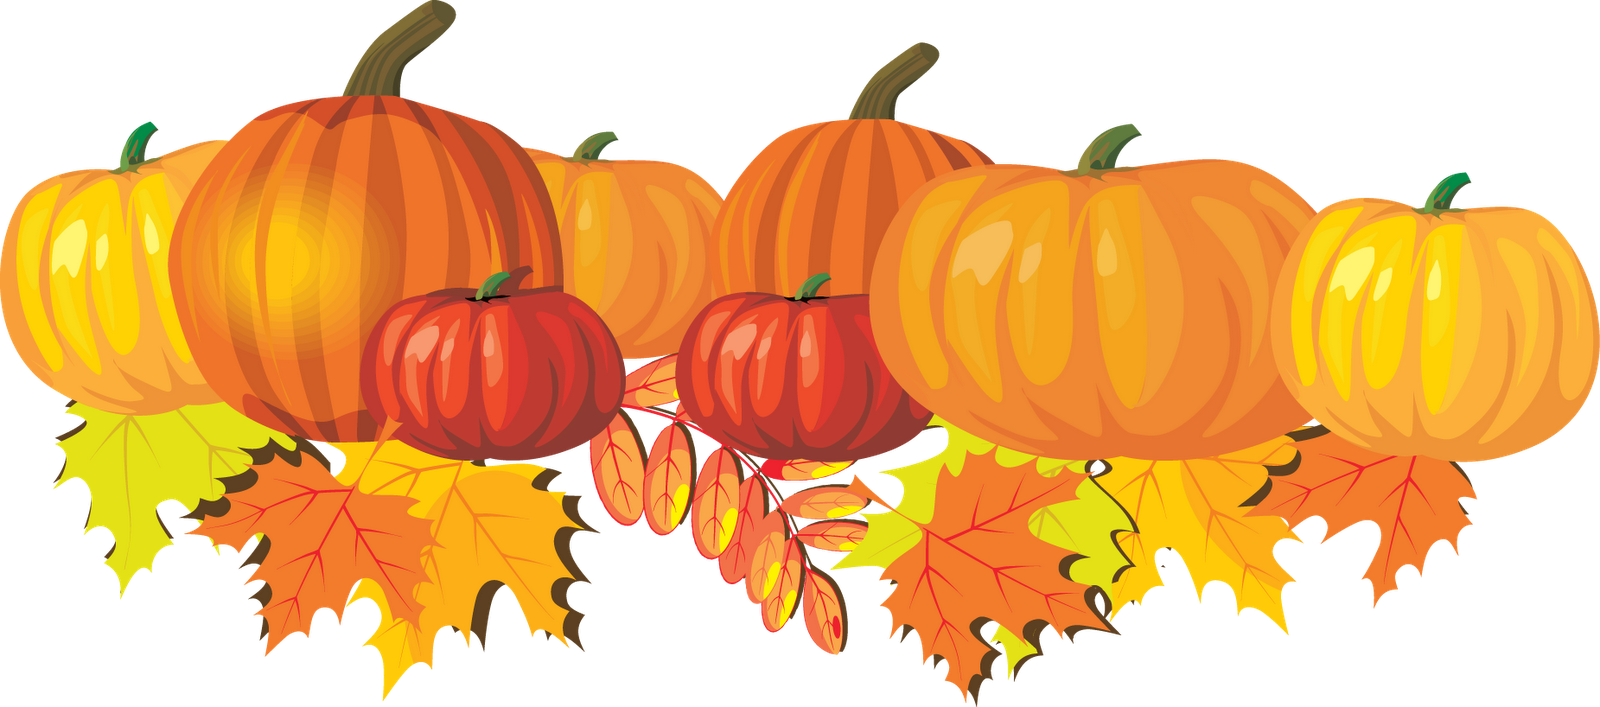 fall leaves and pumpkins in light of the fall season we will be using